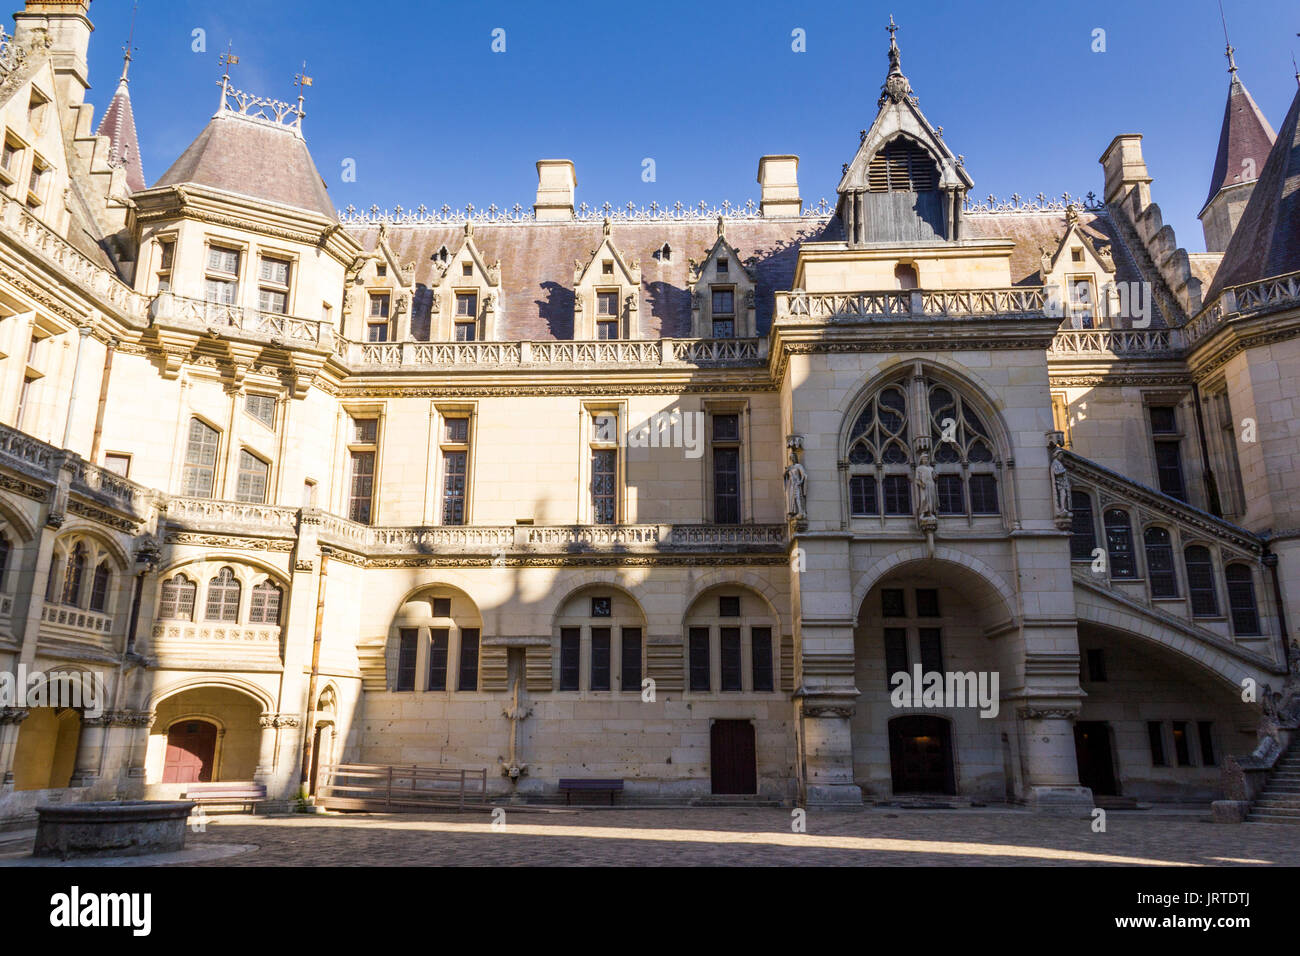 Medieval castle of Pierrefonds, Picardy, France. Interior courtyard, ornate Gothic facade. Stock Photo